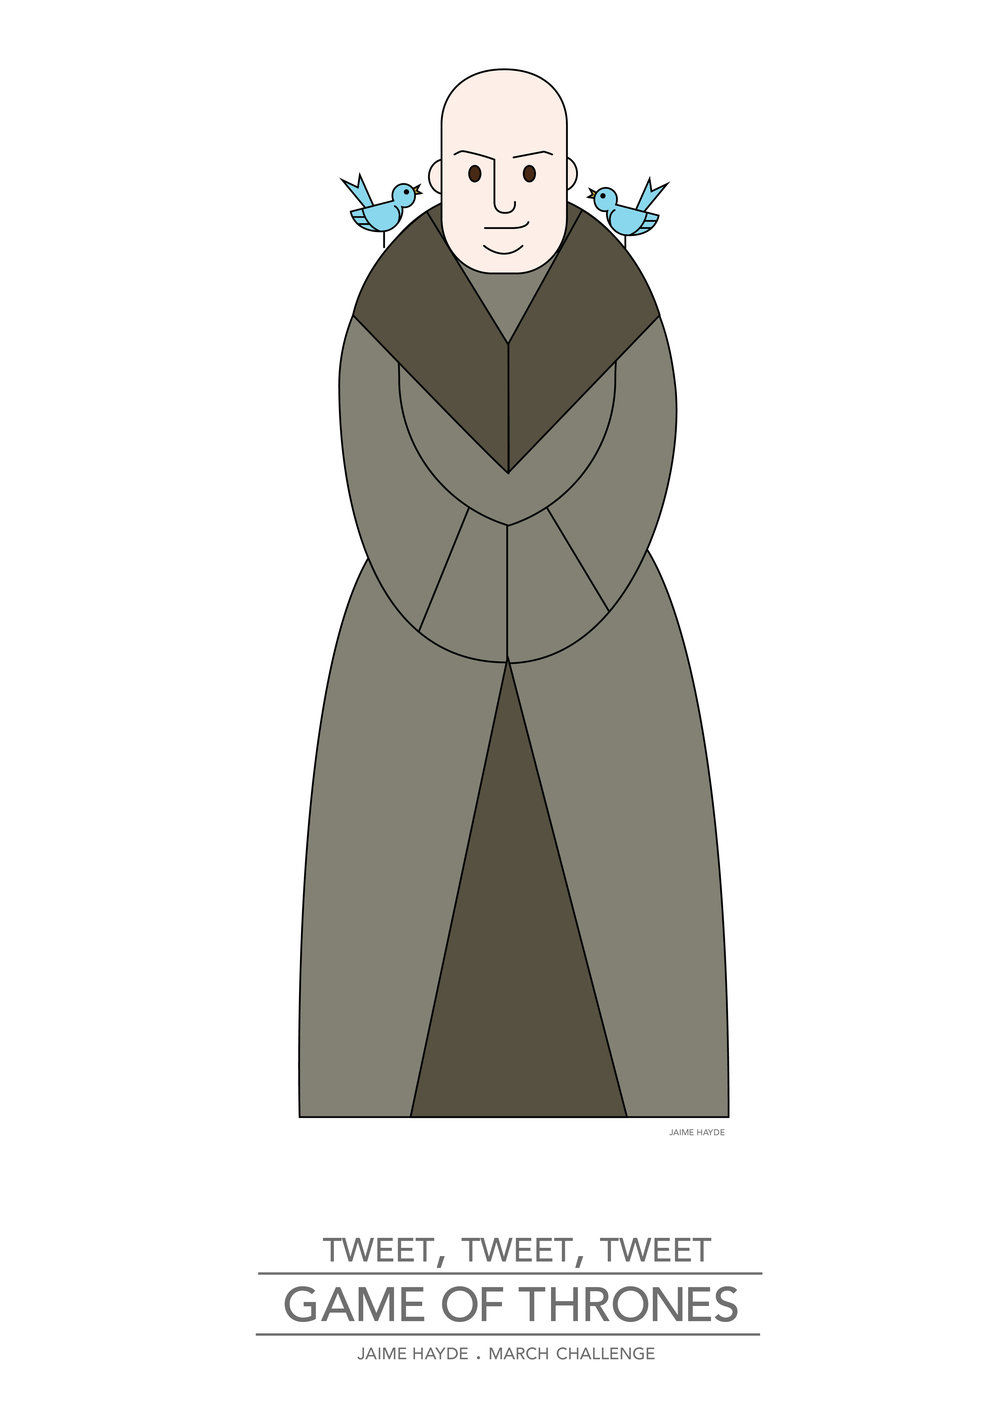 Game-of-thrones-Juego-de-tronos-varys-illustration.jpg